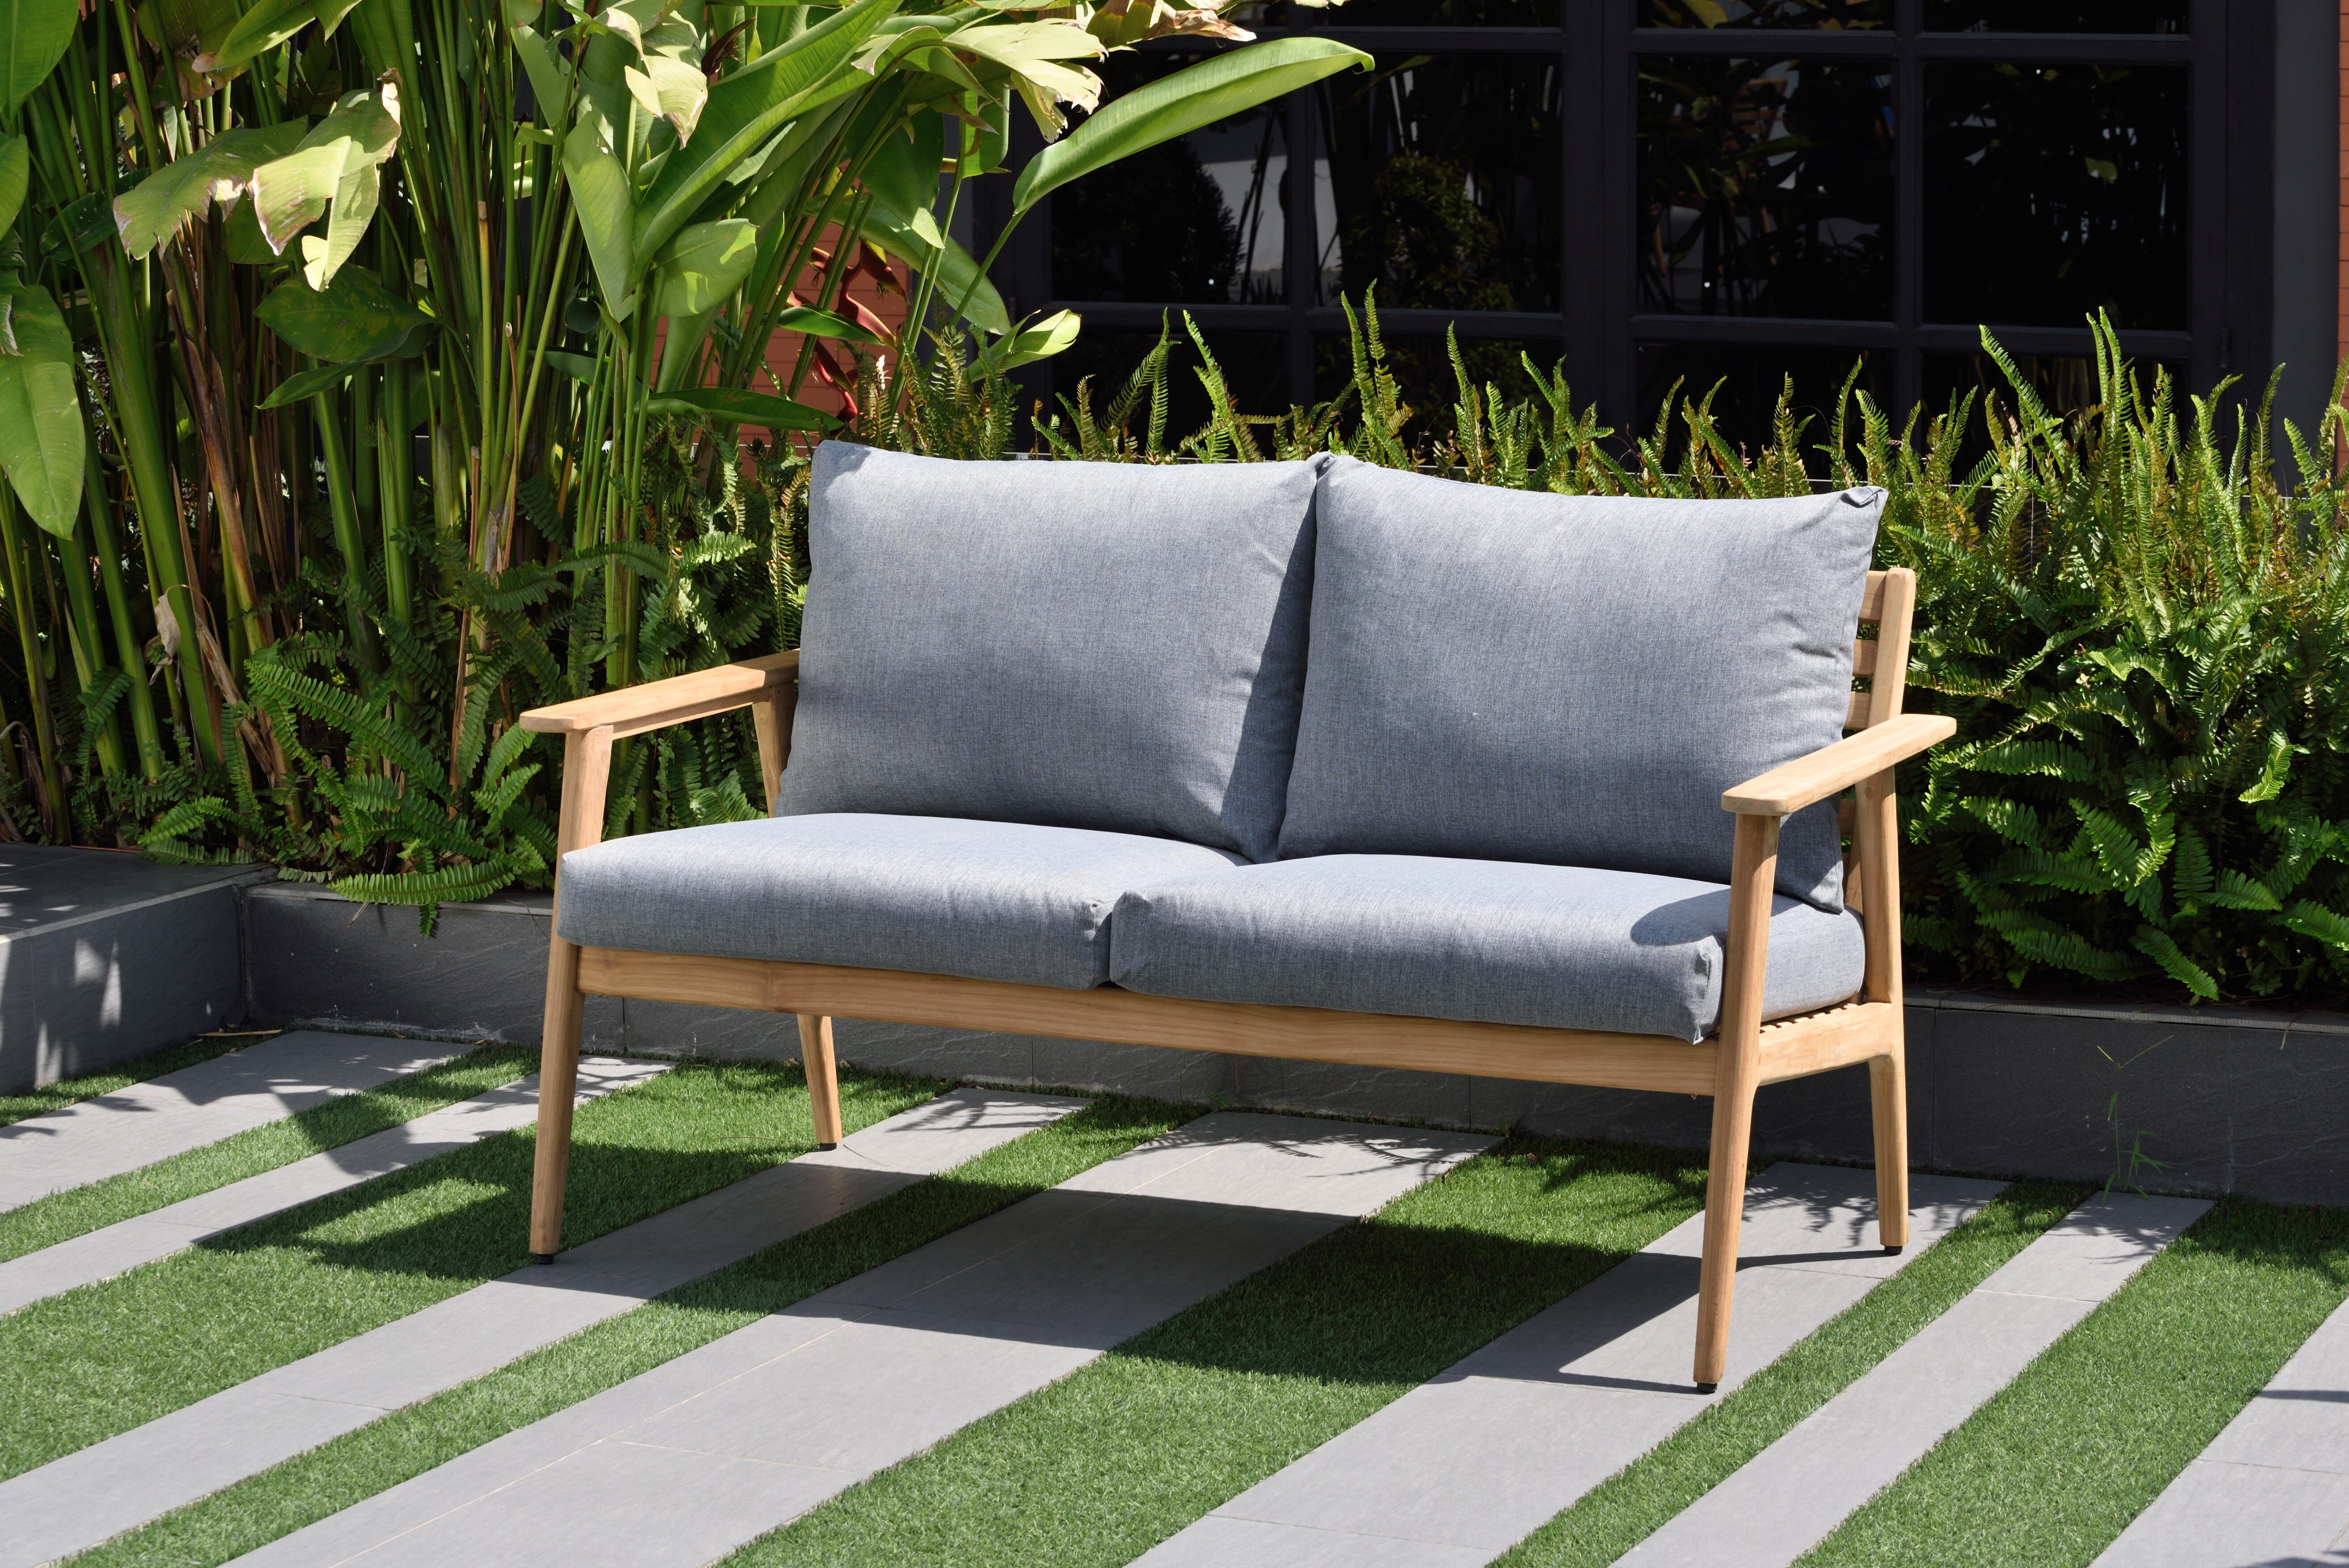 2019 Darrah Deep Seating Teak Patio Sofa With Cushions Intended For Newbury Patio Sofas With Cushions (View 2 of 20)